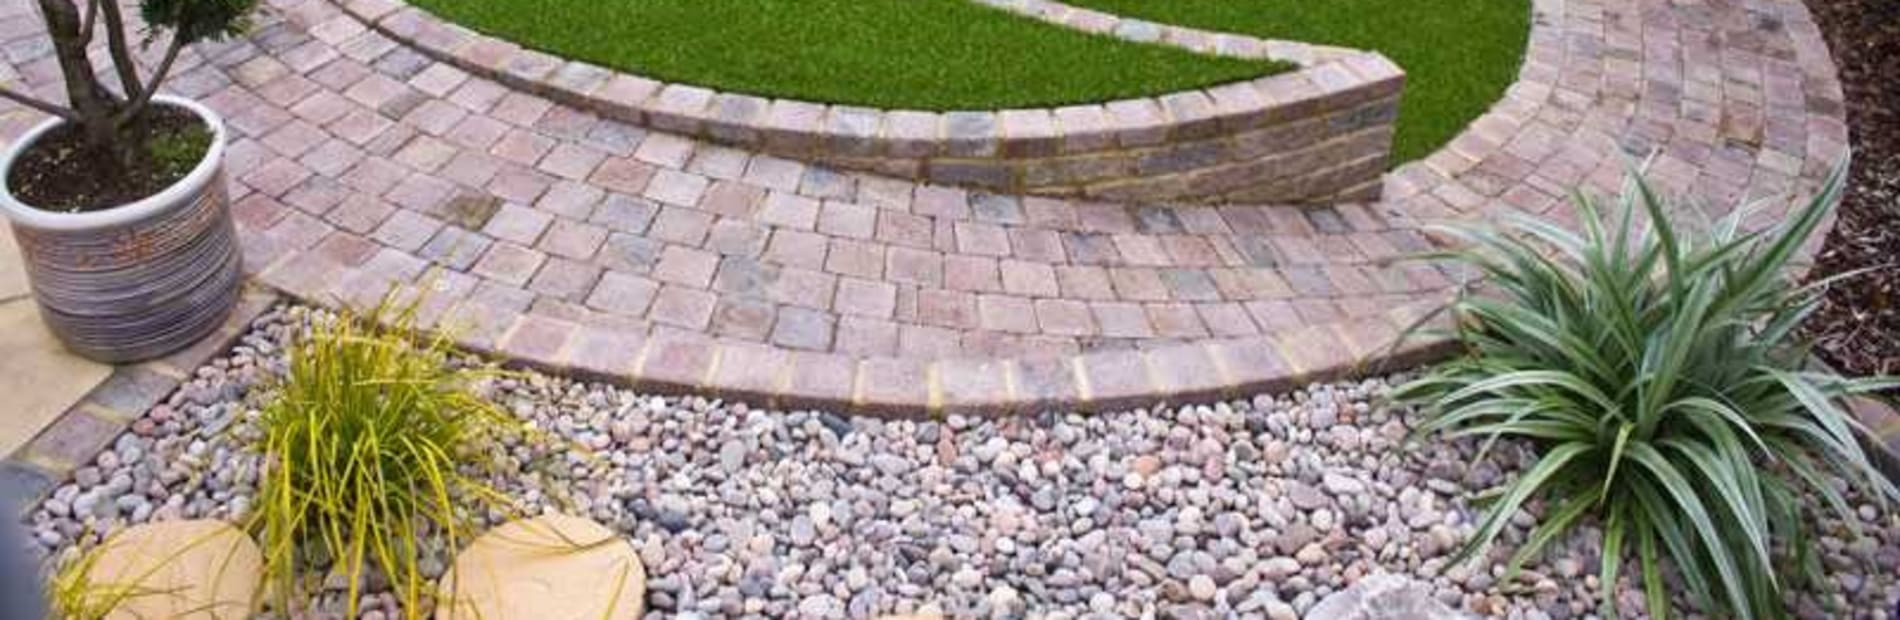 aggregates used in a patio area